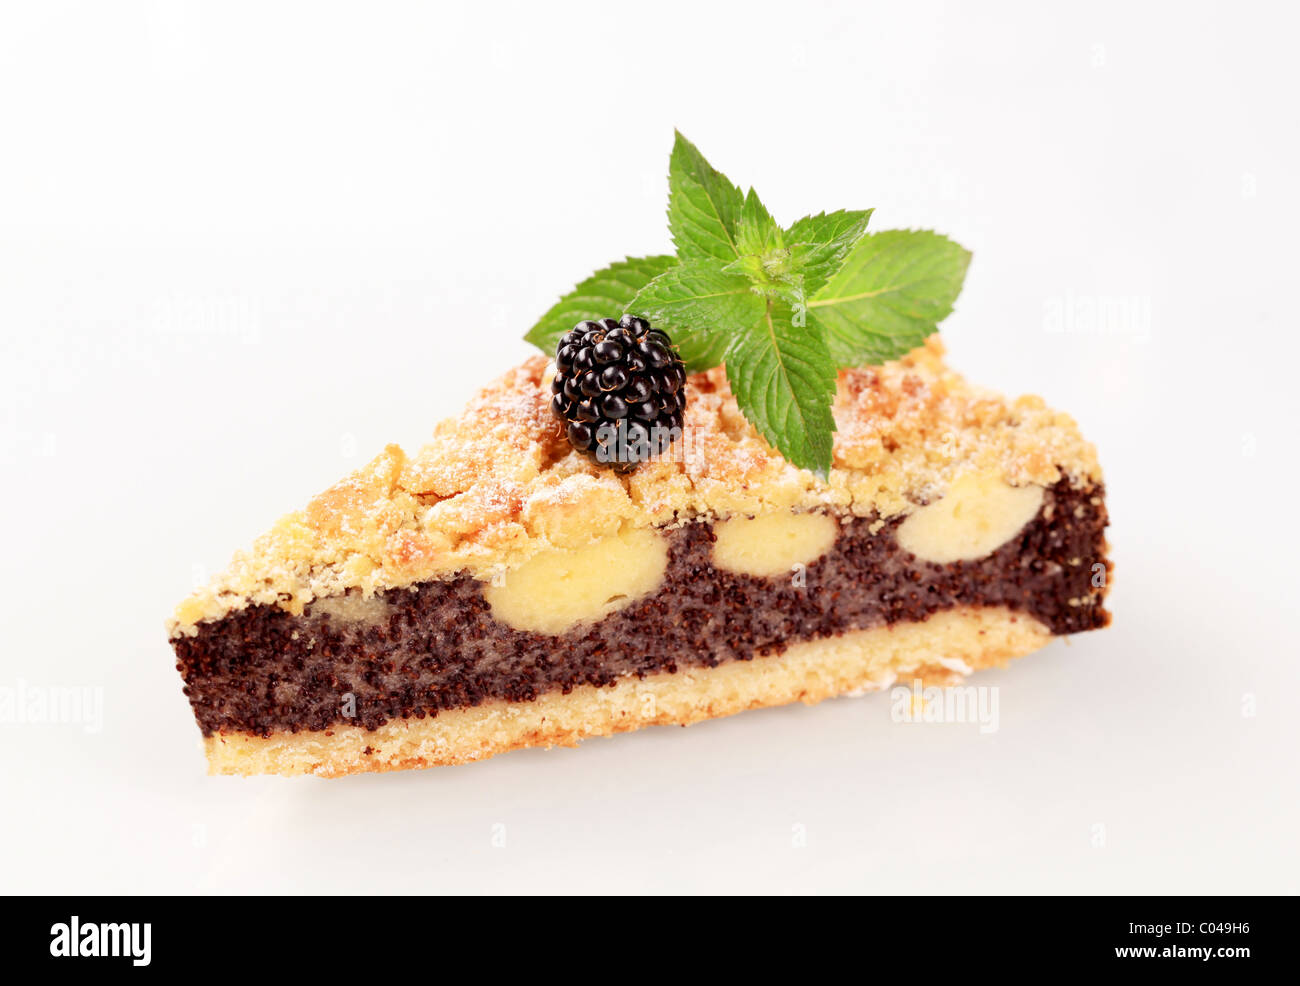 Slice of cake with crumb topping - Stock Image